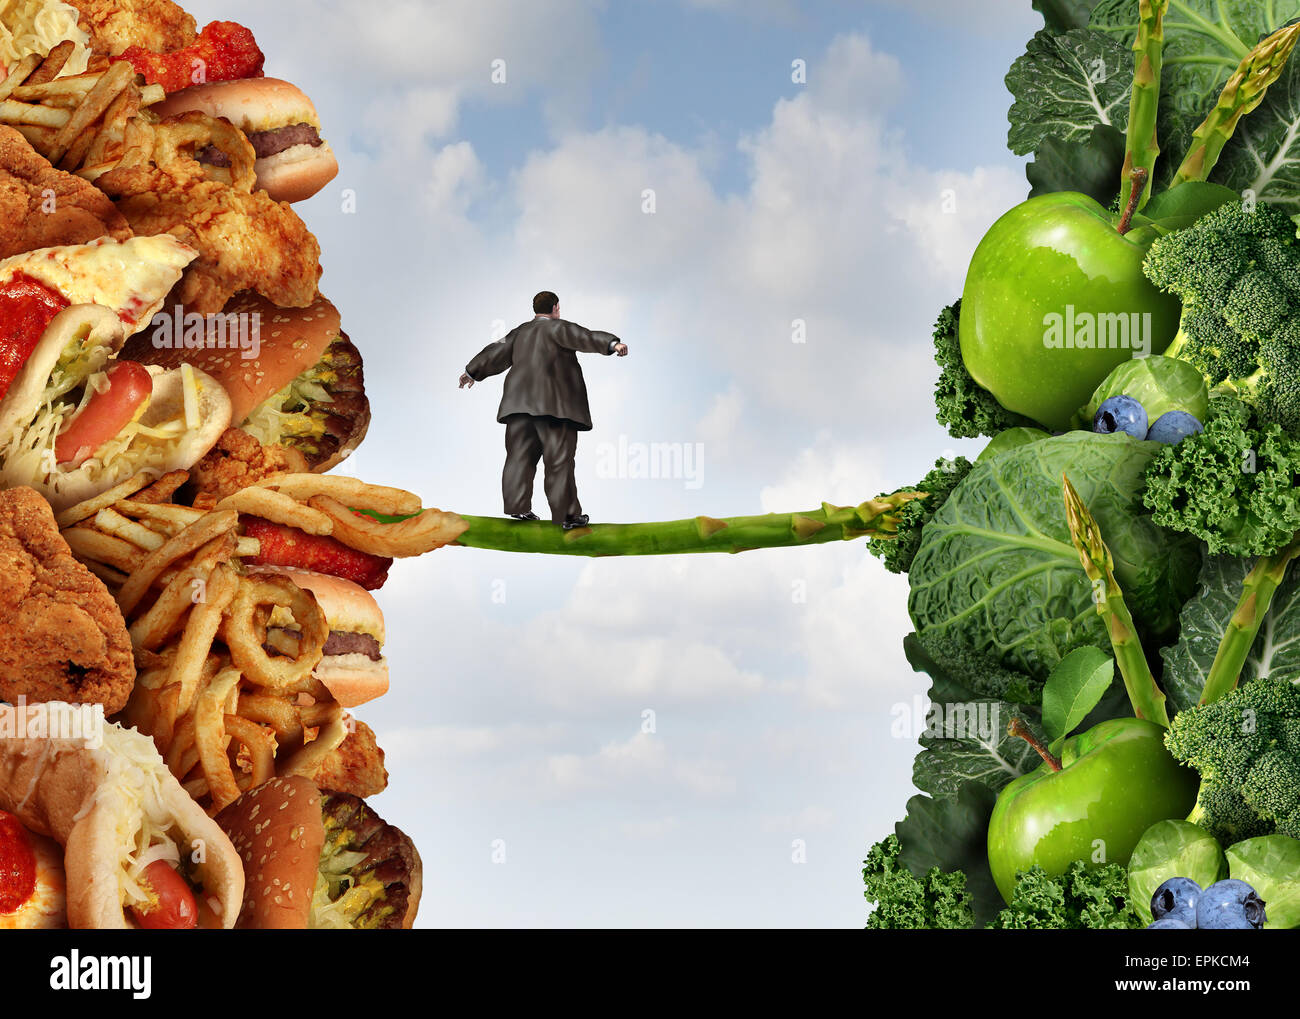 Diet change healthy lifestyle concept and having the courage to accept the challenge of losing weight and fighting - Stock Image